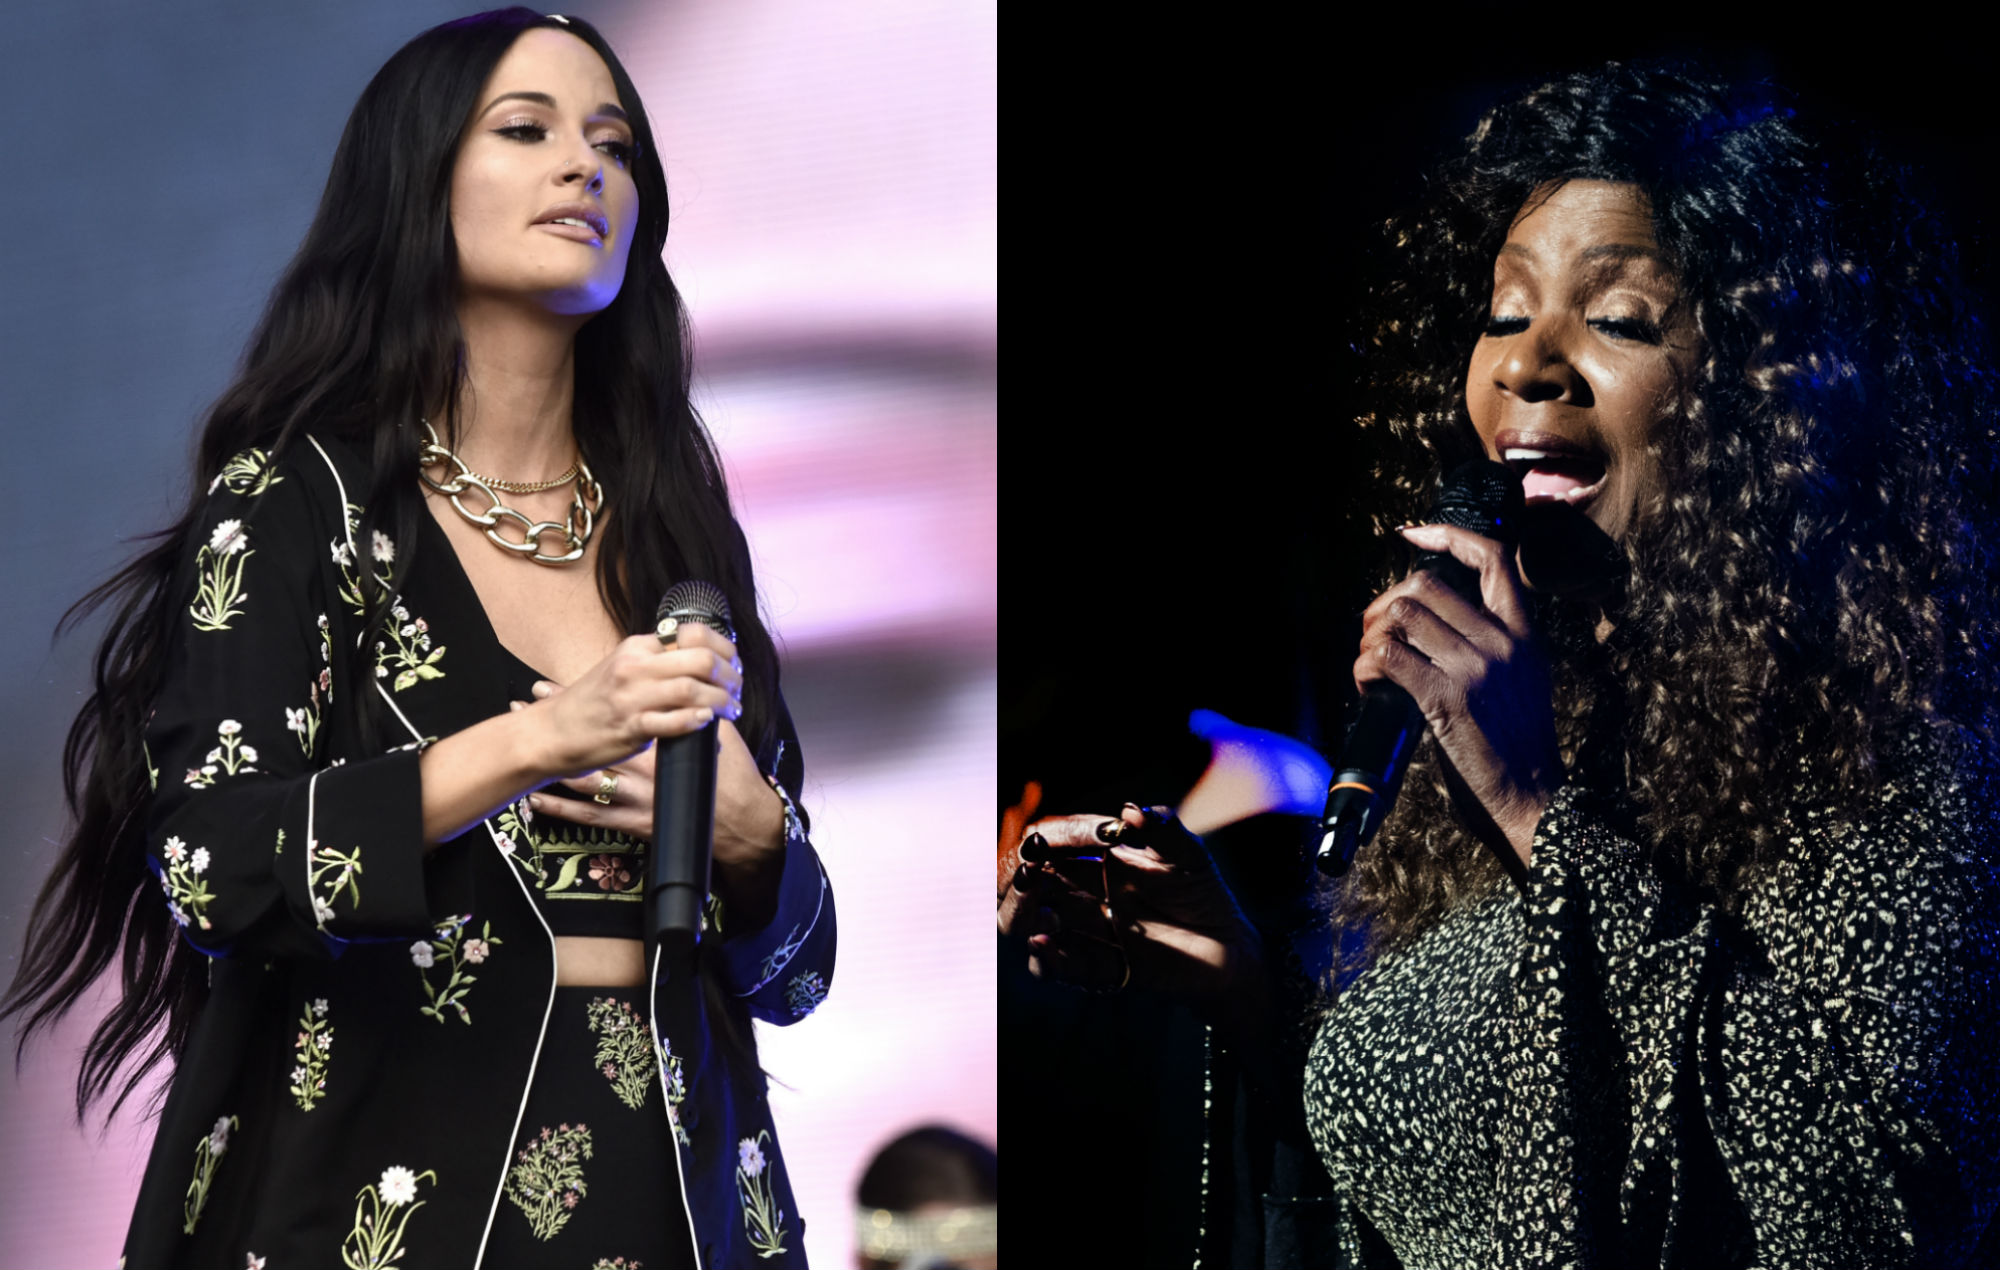 Watch Gloria Gaynor join Kacey Musgraves on stage to perform 'I Will Survive'